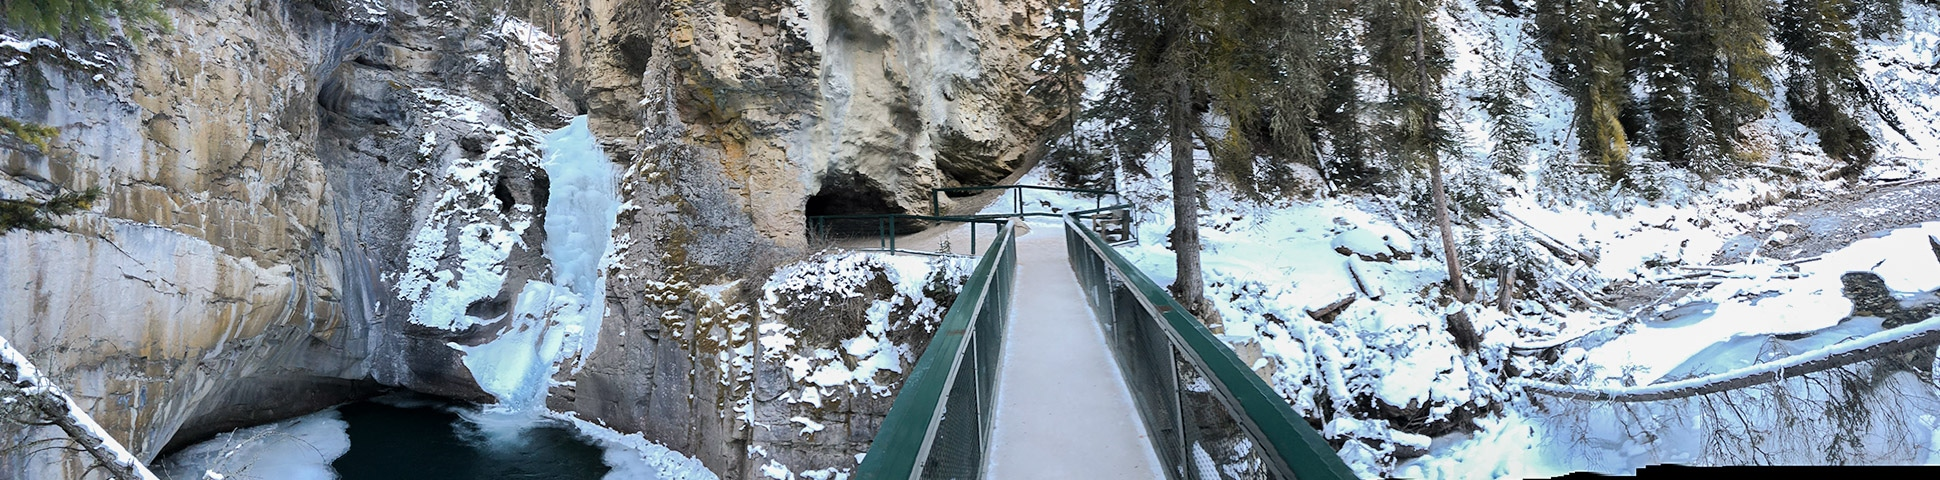 Panorama from Johnston Canyon snowshoe trail in Banff National Park